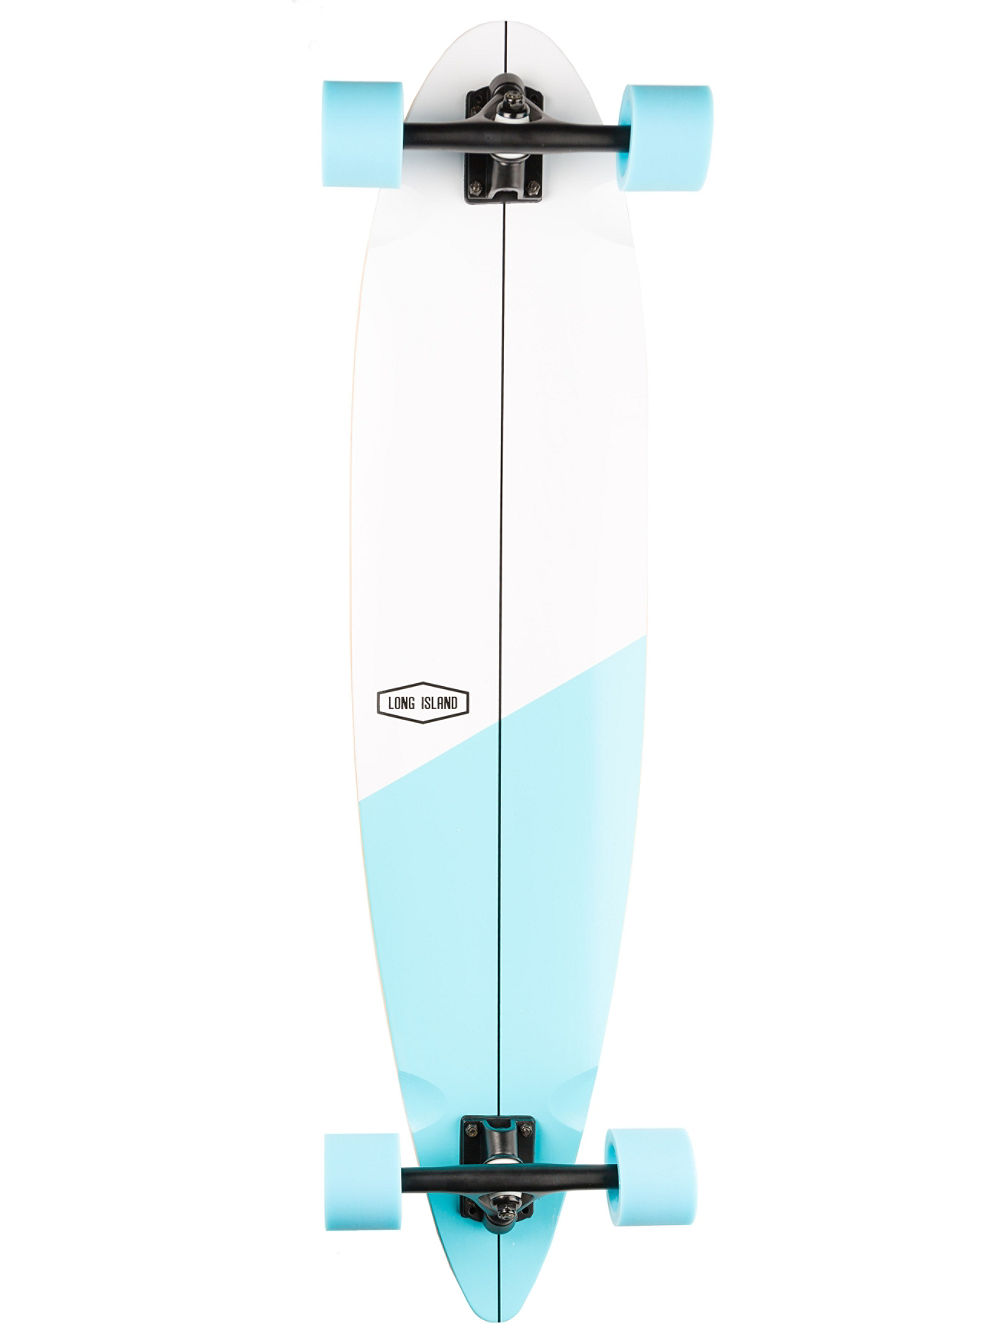 "Cross 39.0"" Essential Pintail Skate Completo"